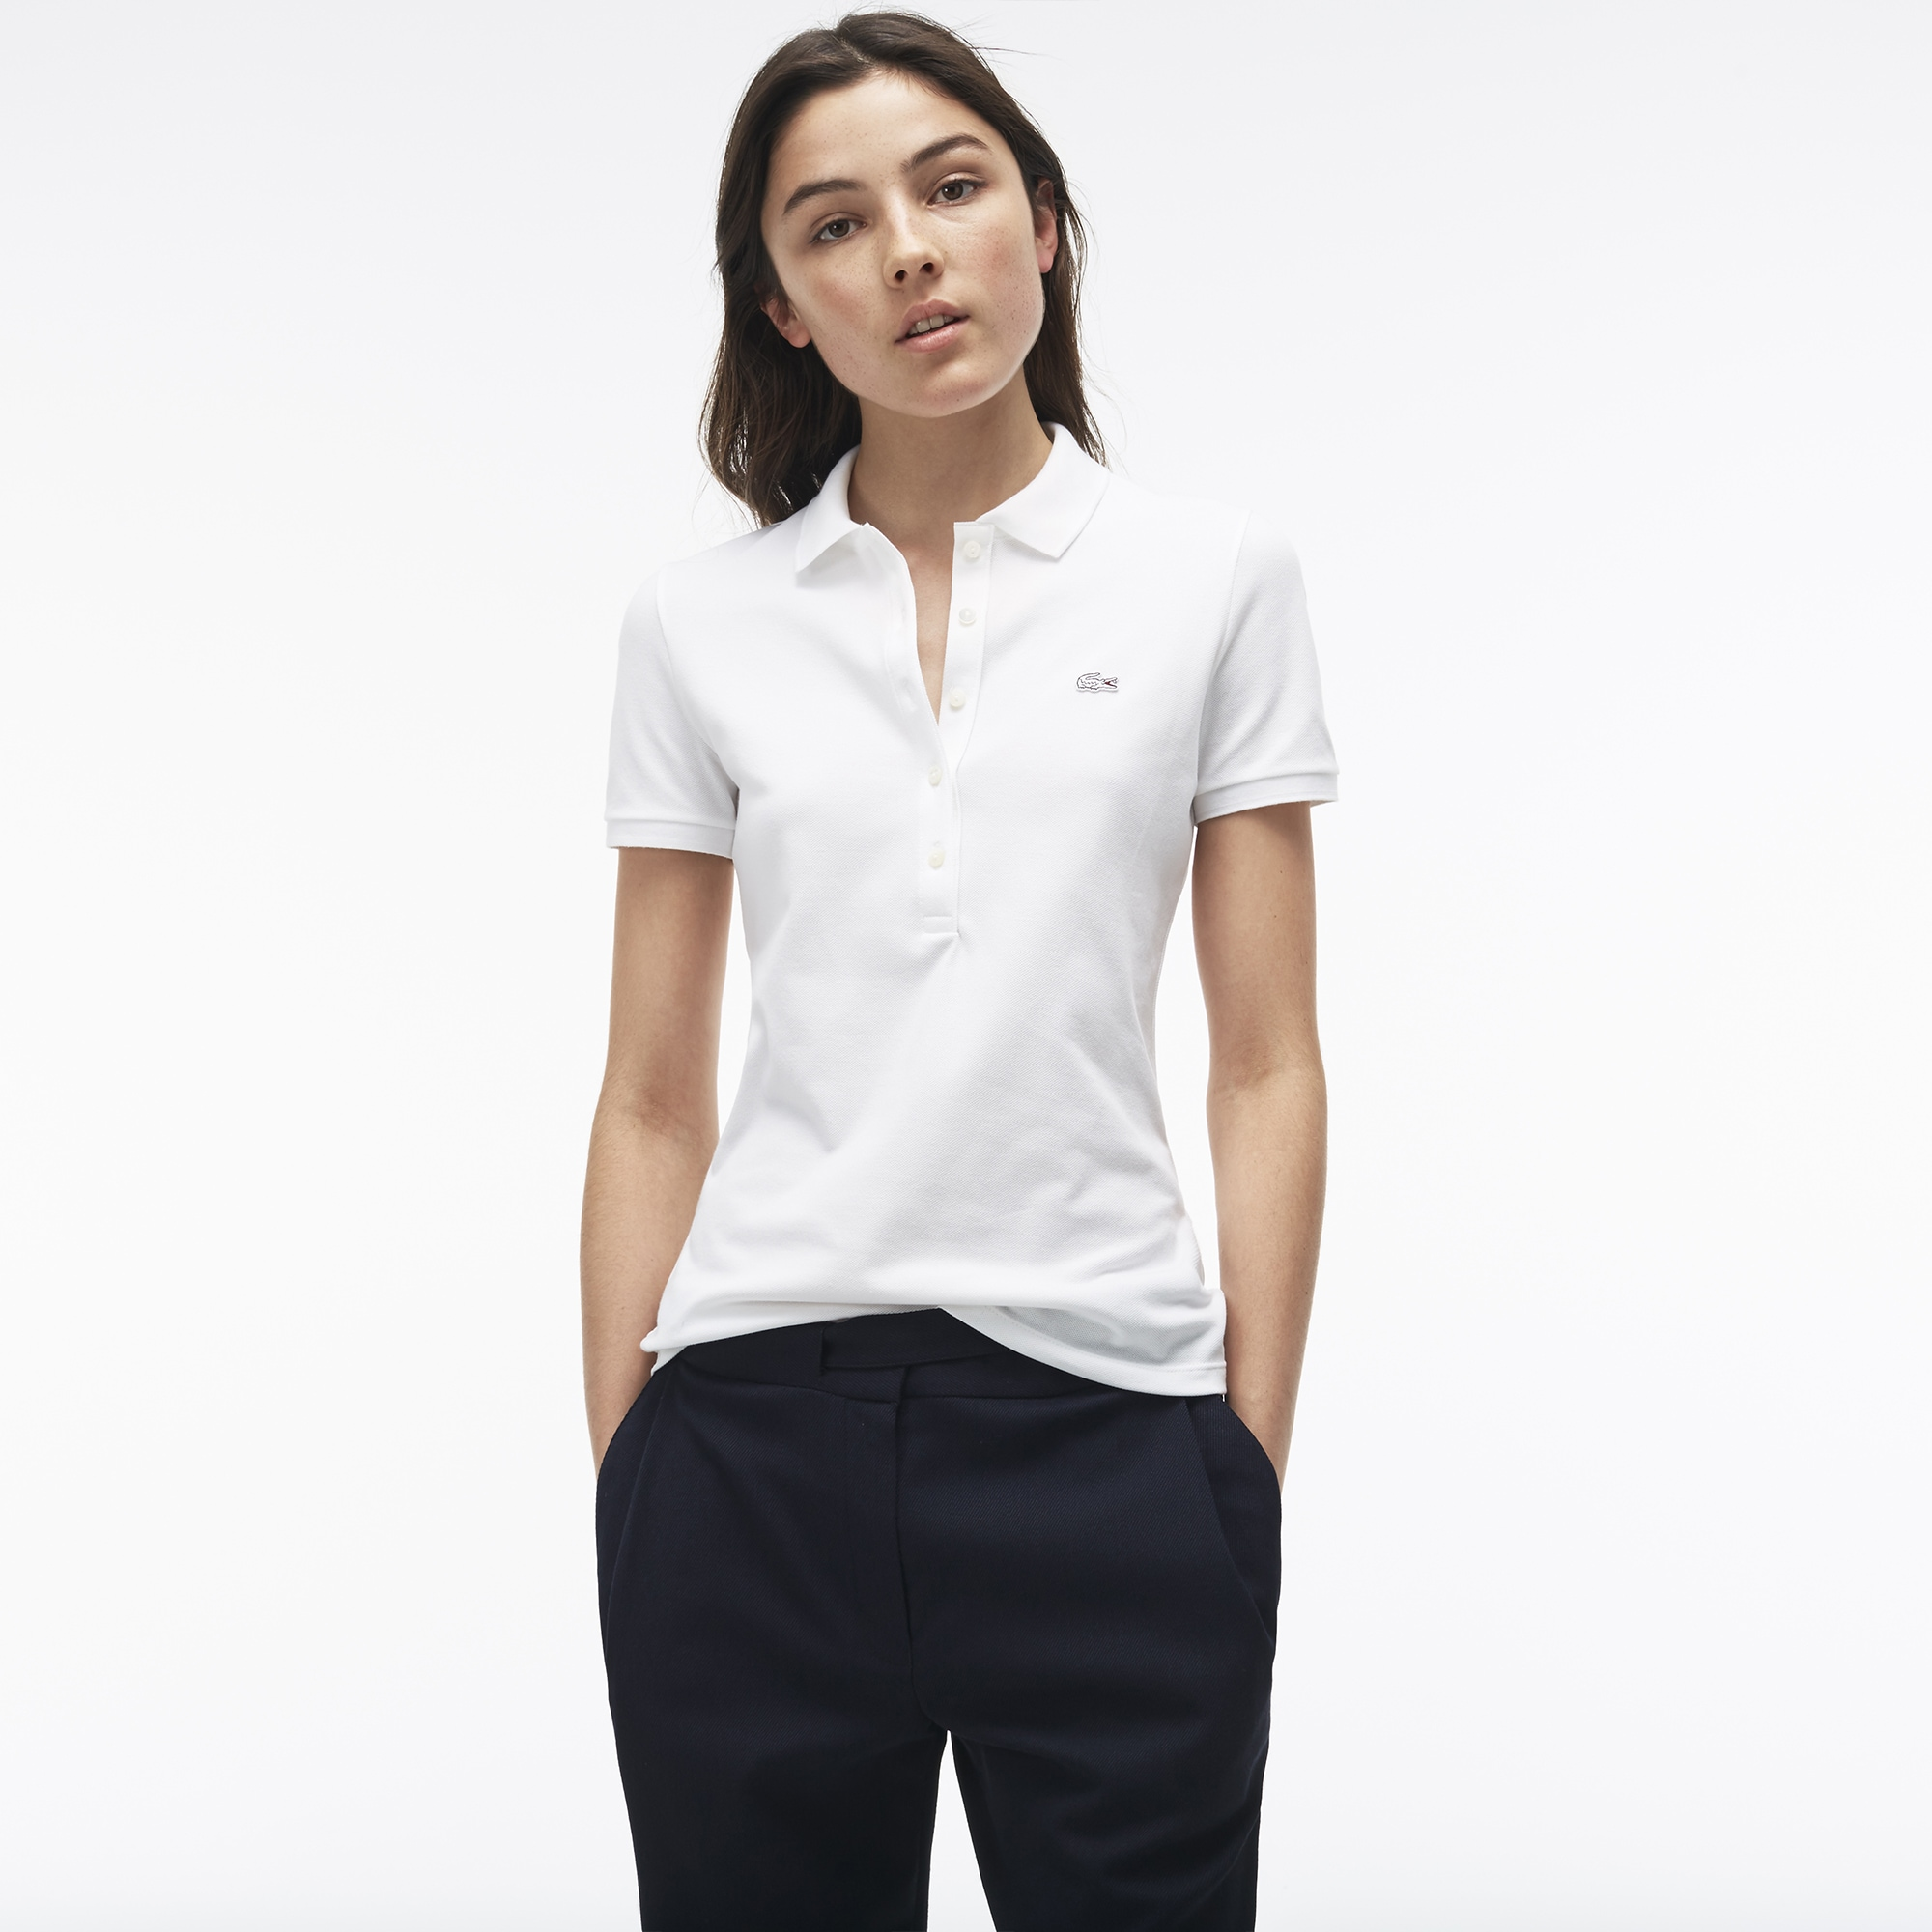 Customised Women's Lacoste Polo